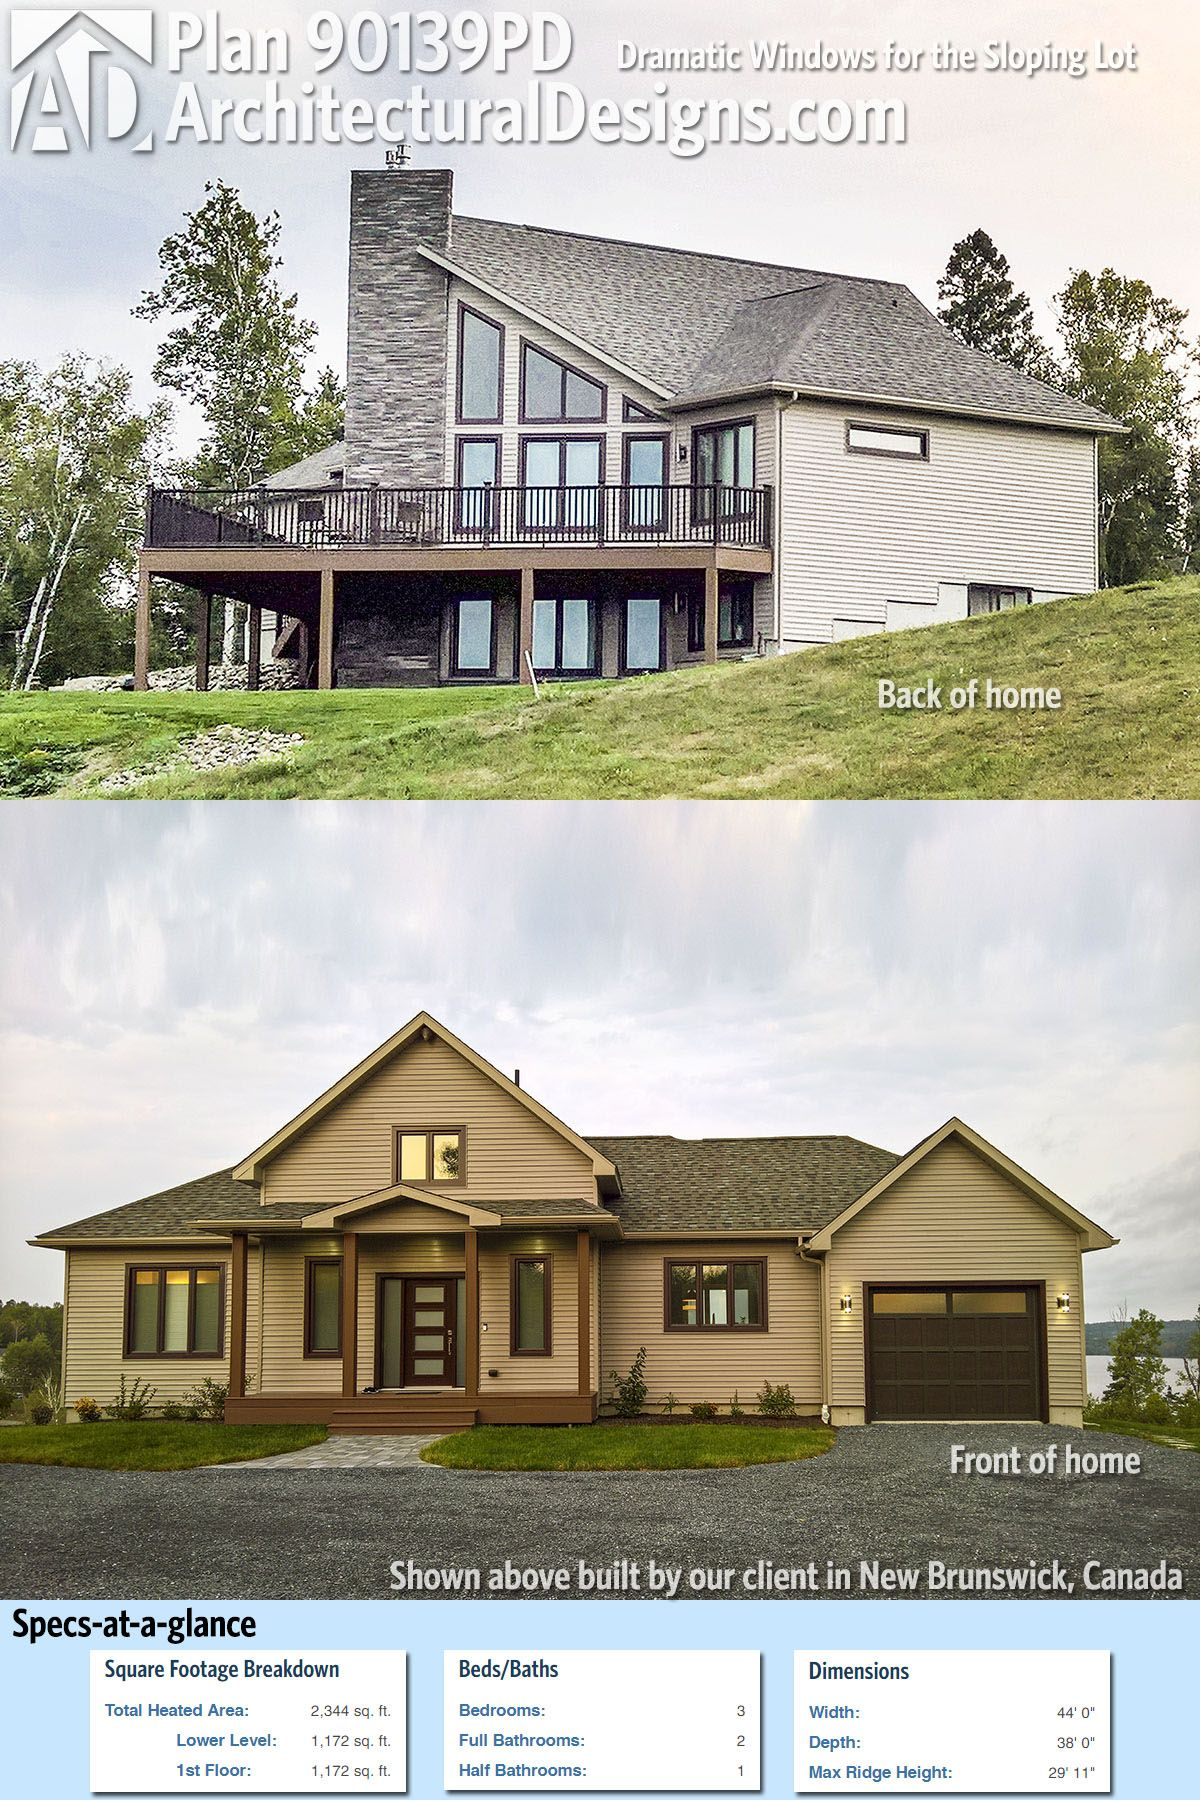 Plan 90139PD Dramatic Windows for the Sloping Lot Lake